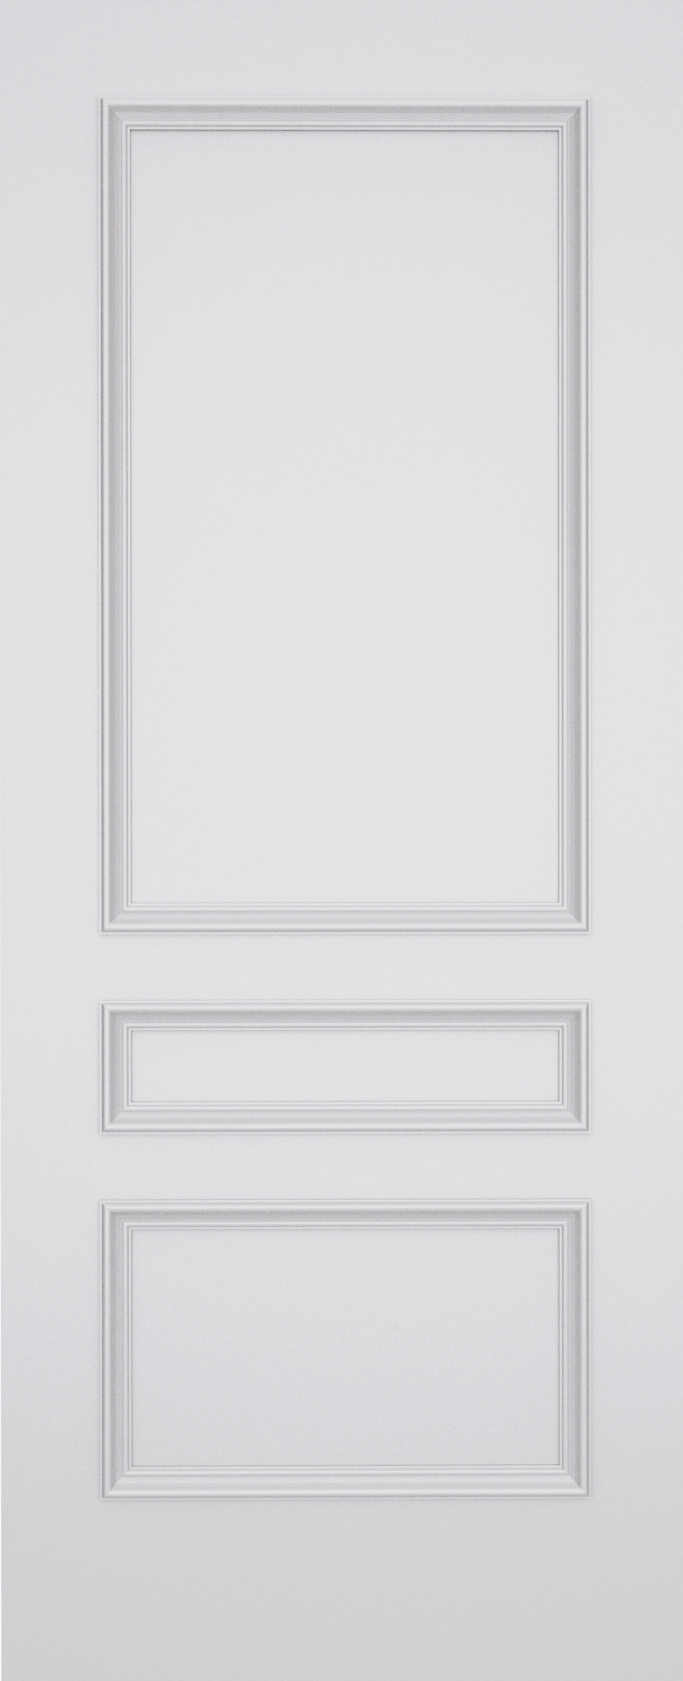 Kesh Kensington 3 Panel Door